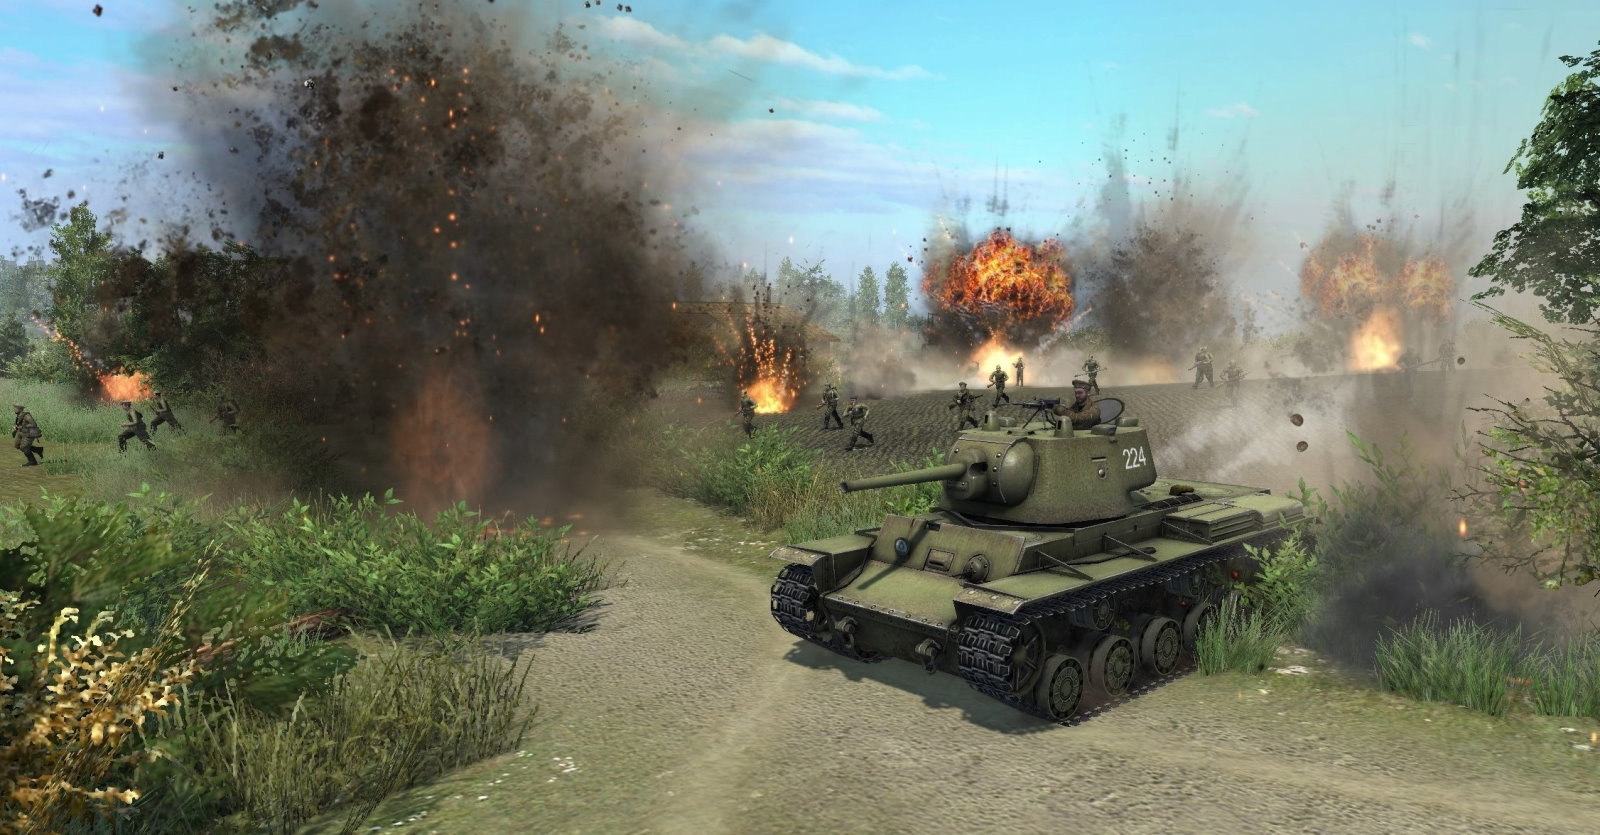 Super Realism Effect mod (RobZ, Valour, Great War) (AS2 — 3.262.0) (v17.02.2021)